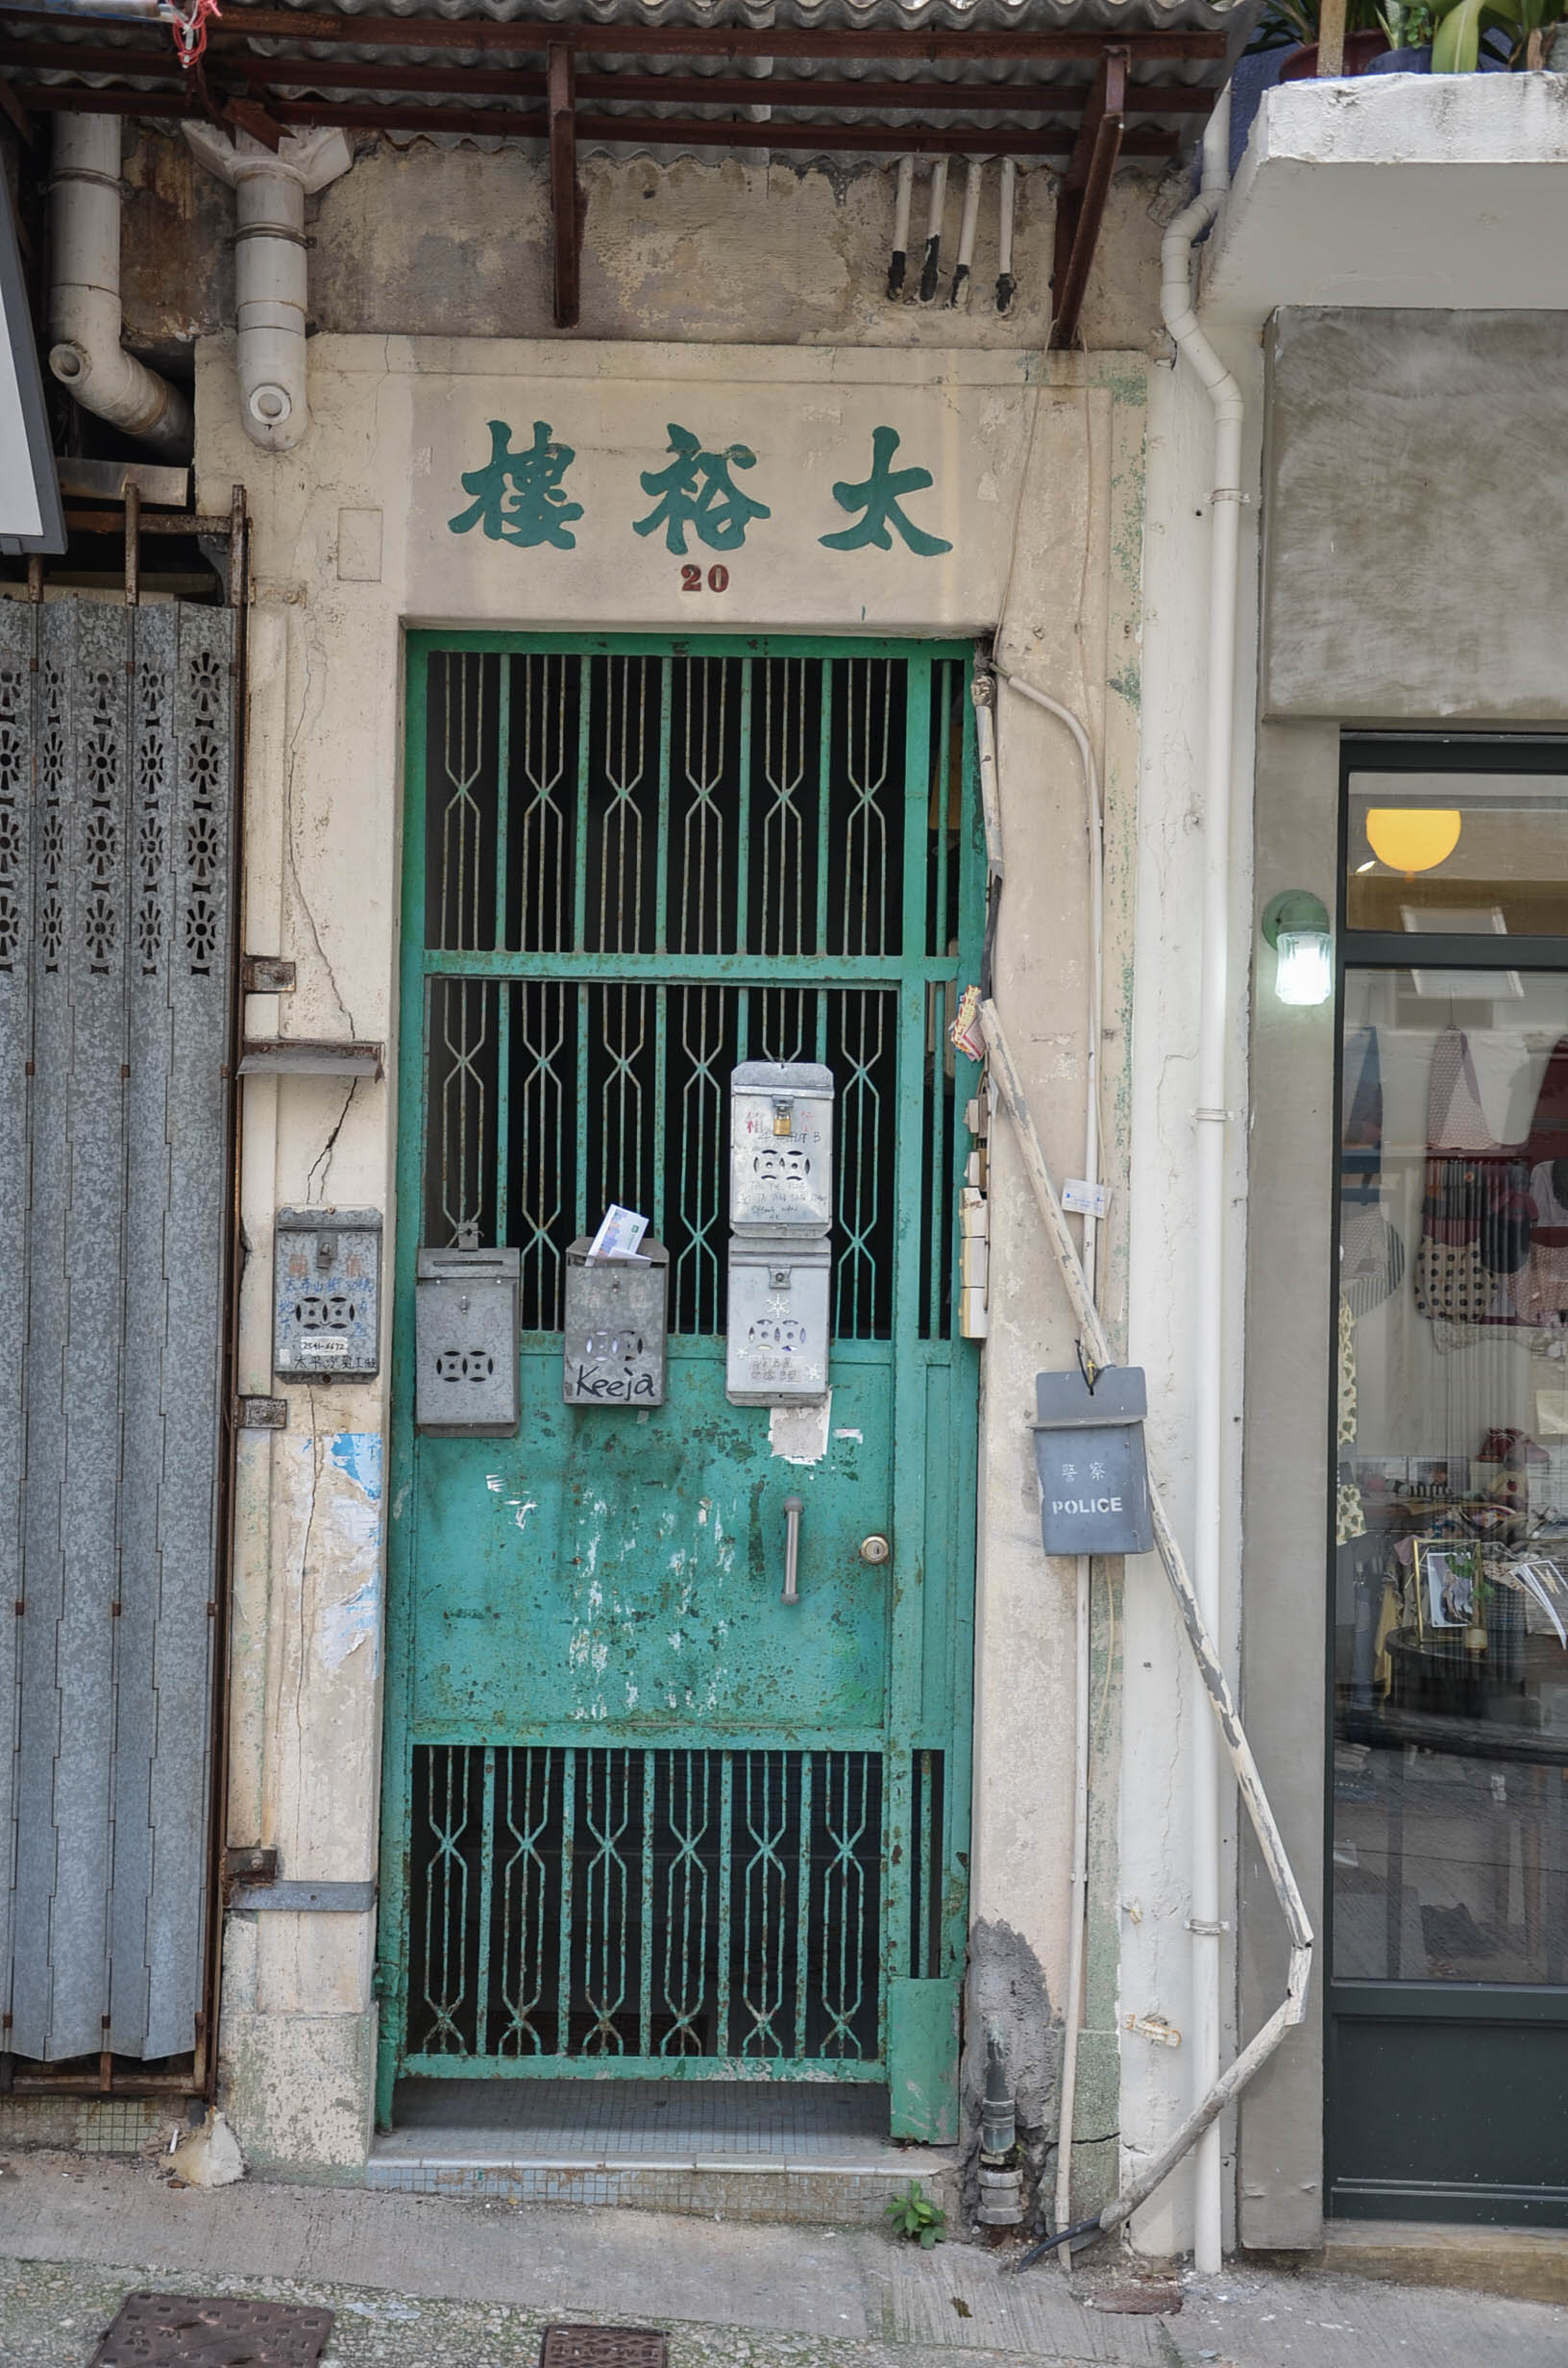 Die Taxis finden (fast) jede Adresse in Hongkong